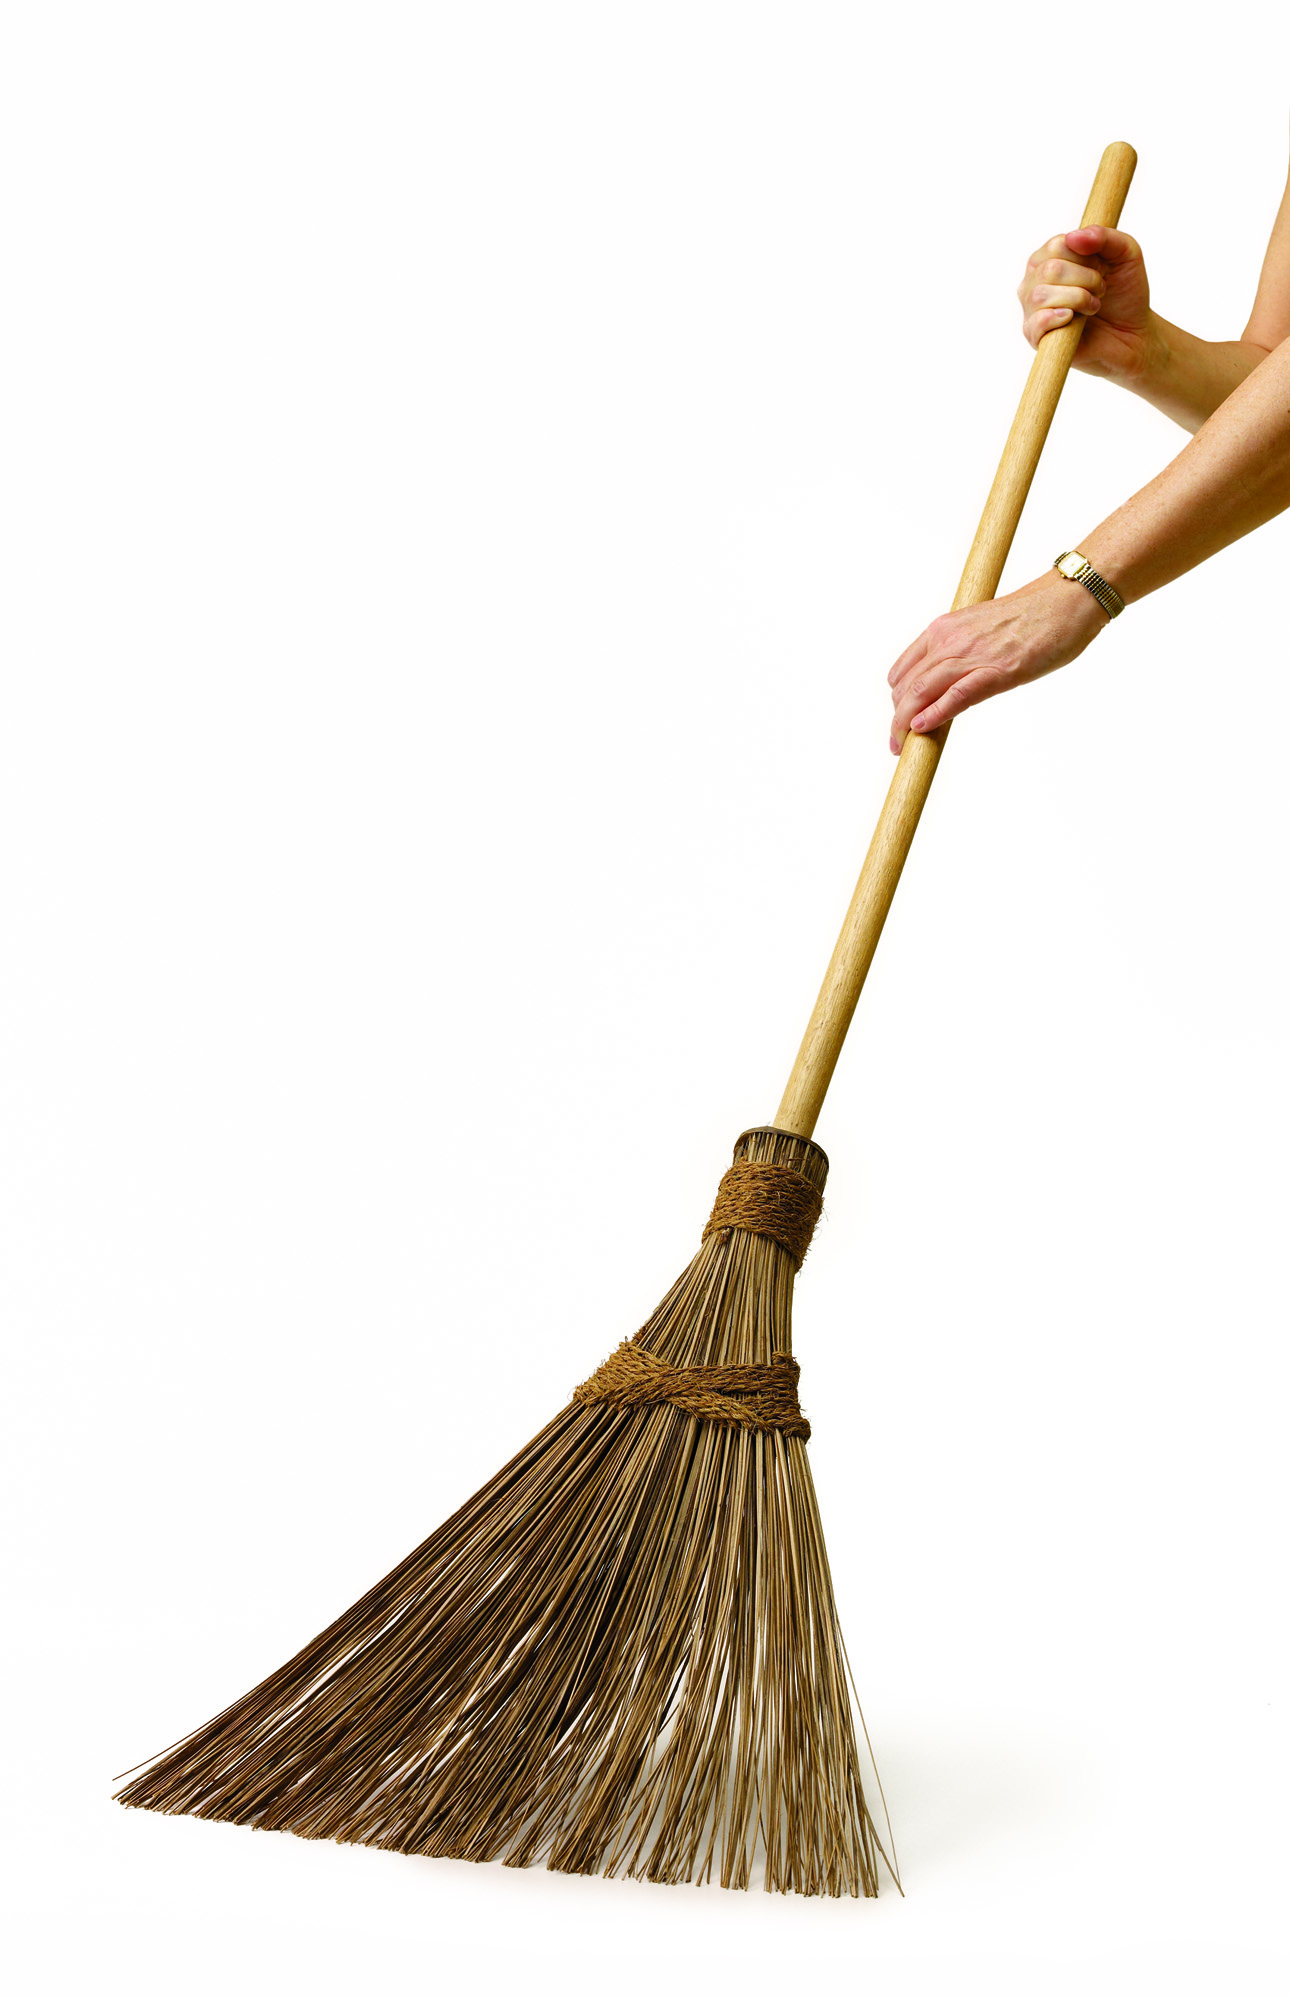 how to clean new broom